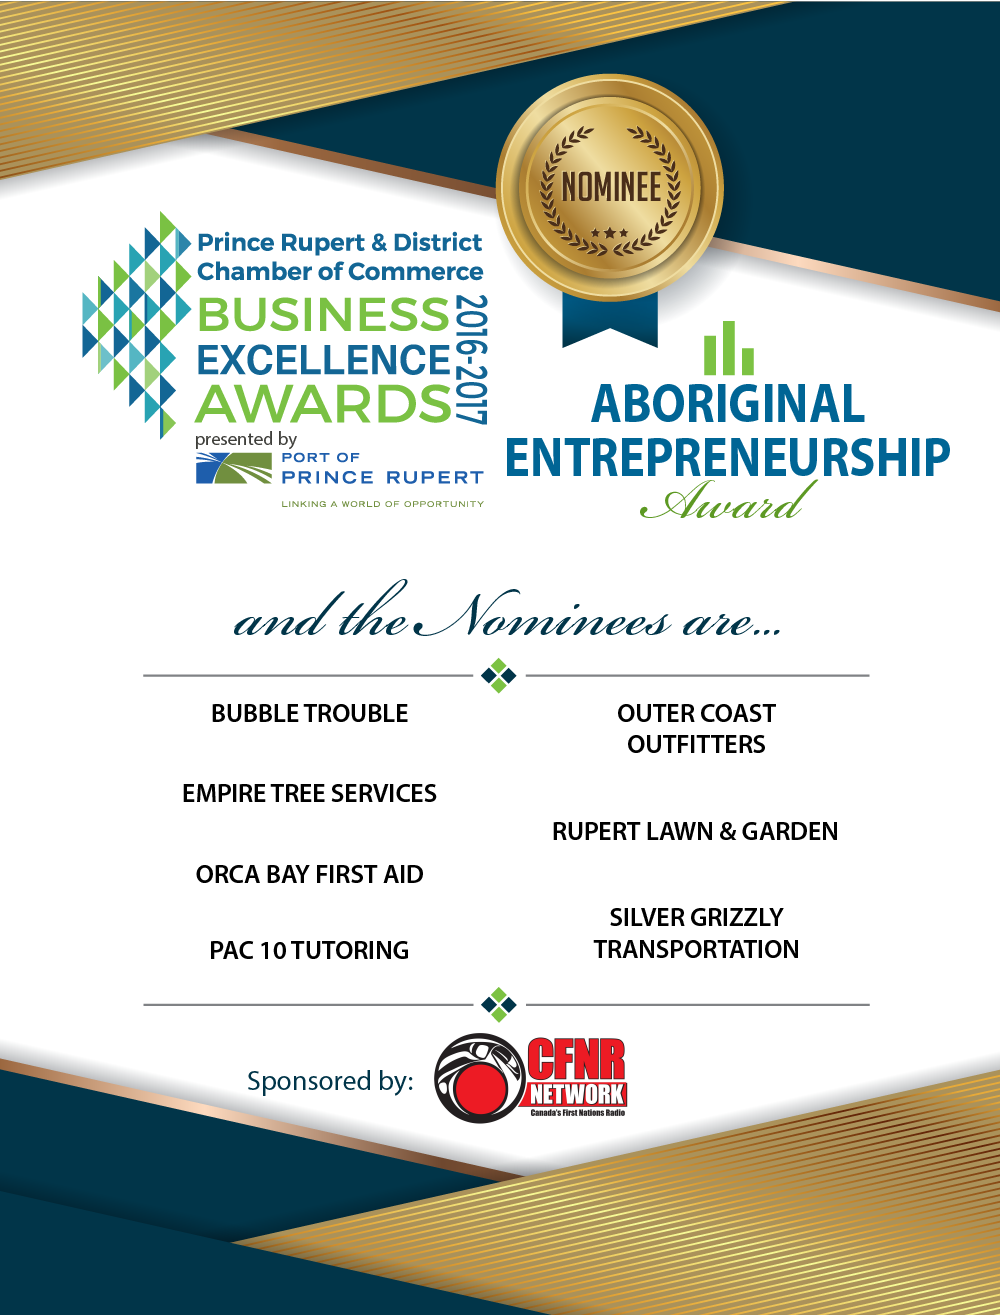 Aboriginal Entrepreneurship Award